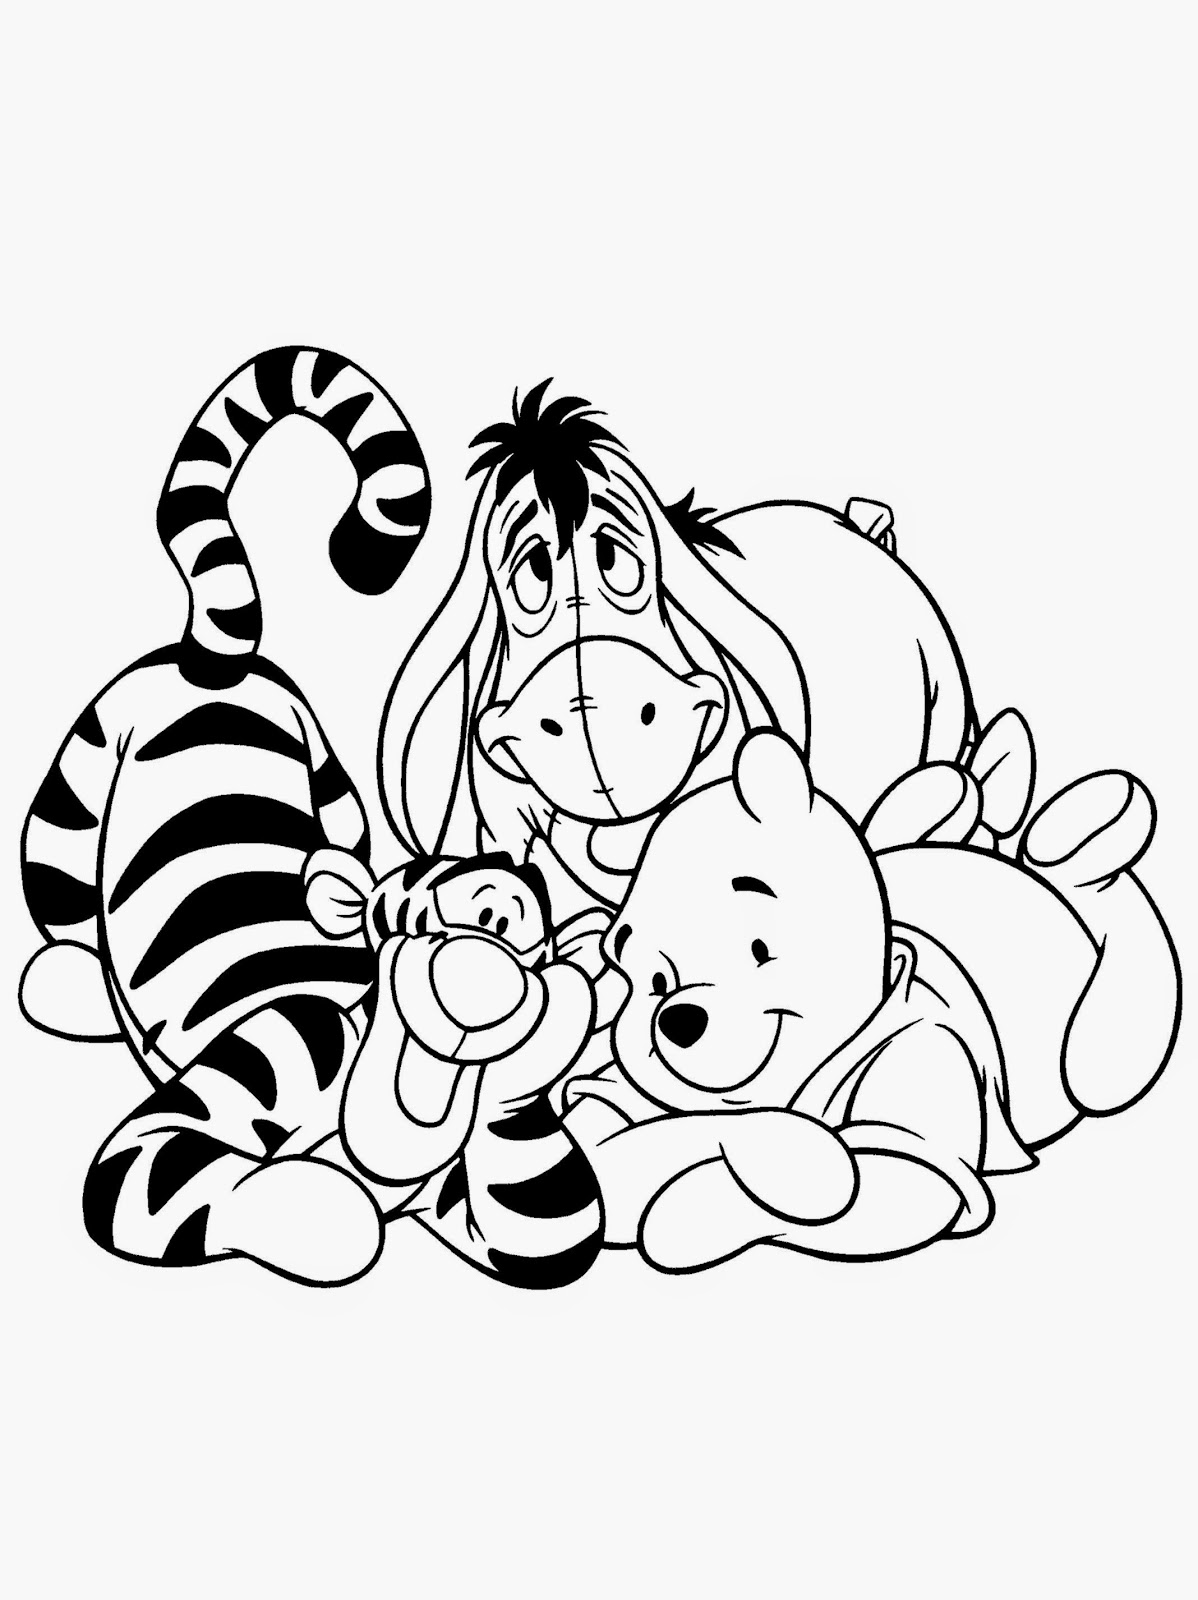 pooh color baby pooh coloring pages disneyclipscom color pooh